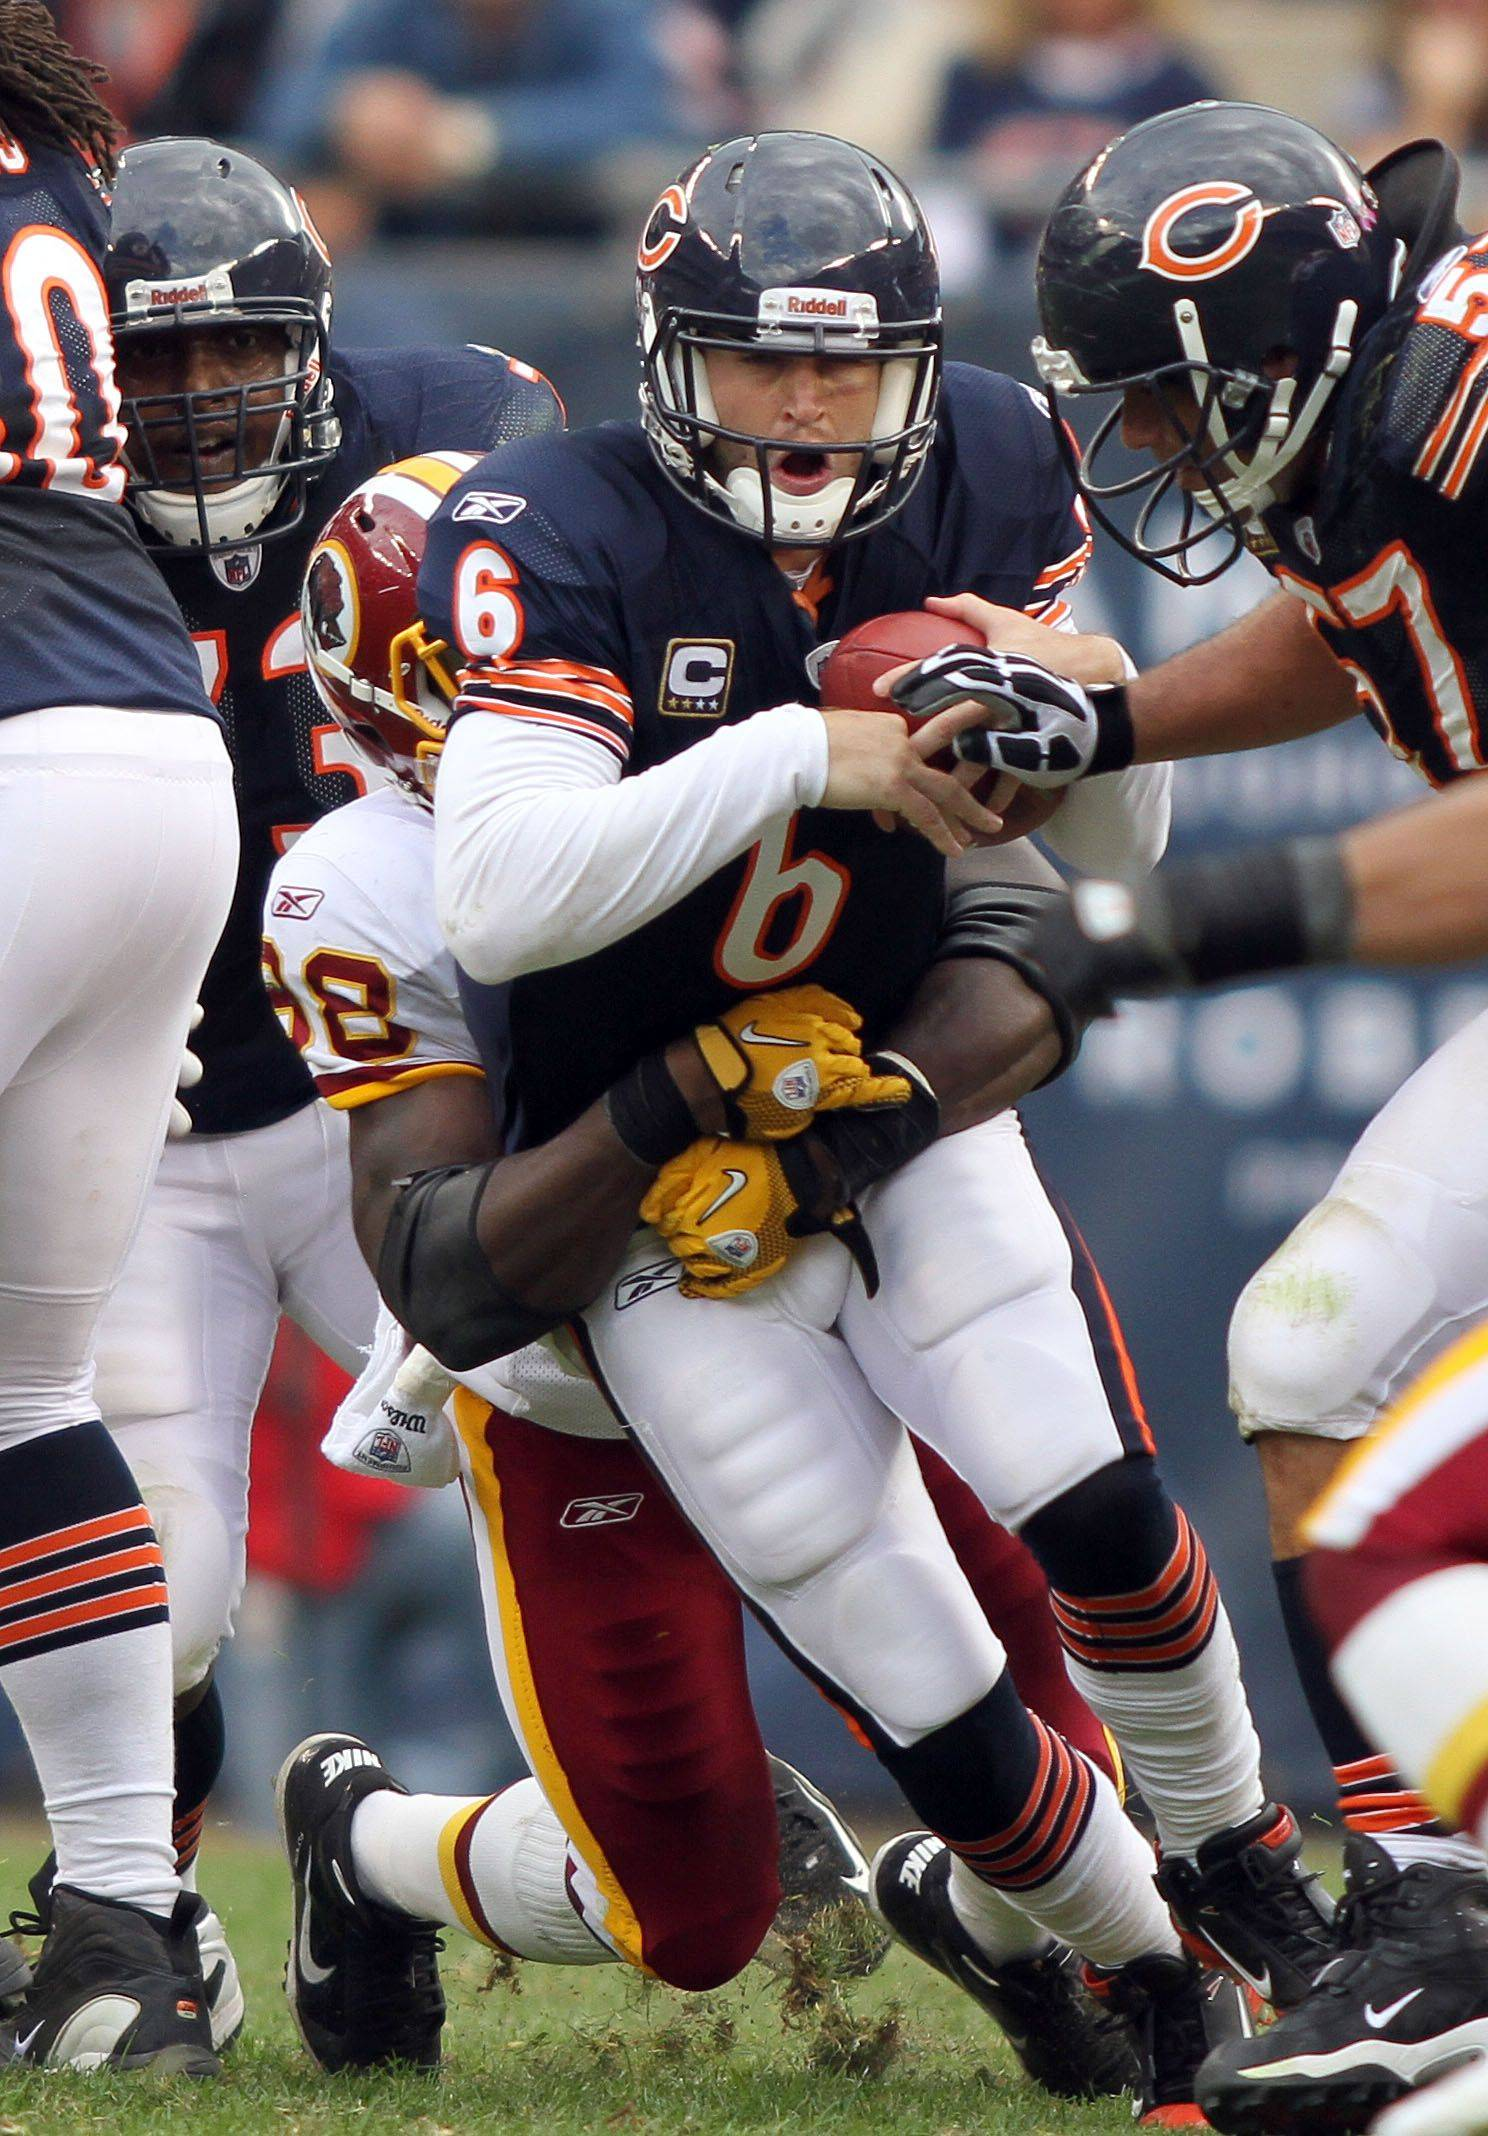 Chicago Bears quarterback Jay Cutler is sacked by Washington Redskins linebacker Brian Orakpo during the Bears' 14-17 loss to the Redskins.